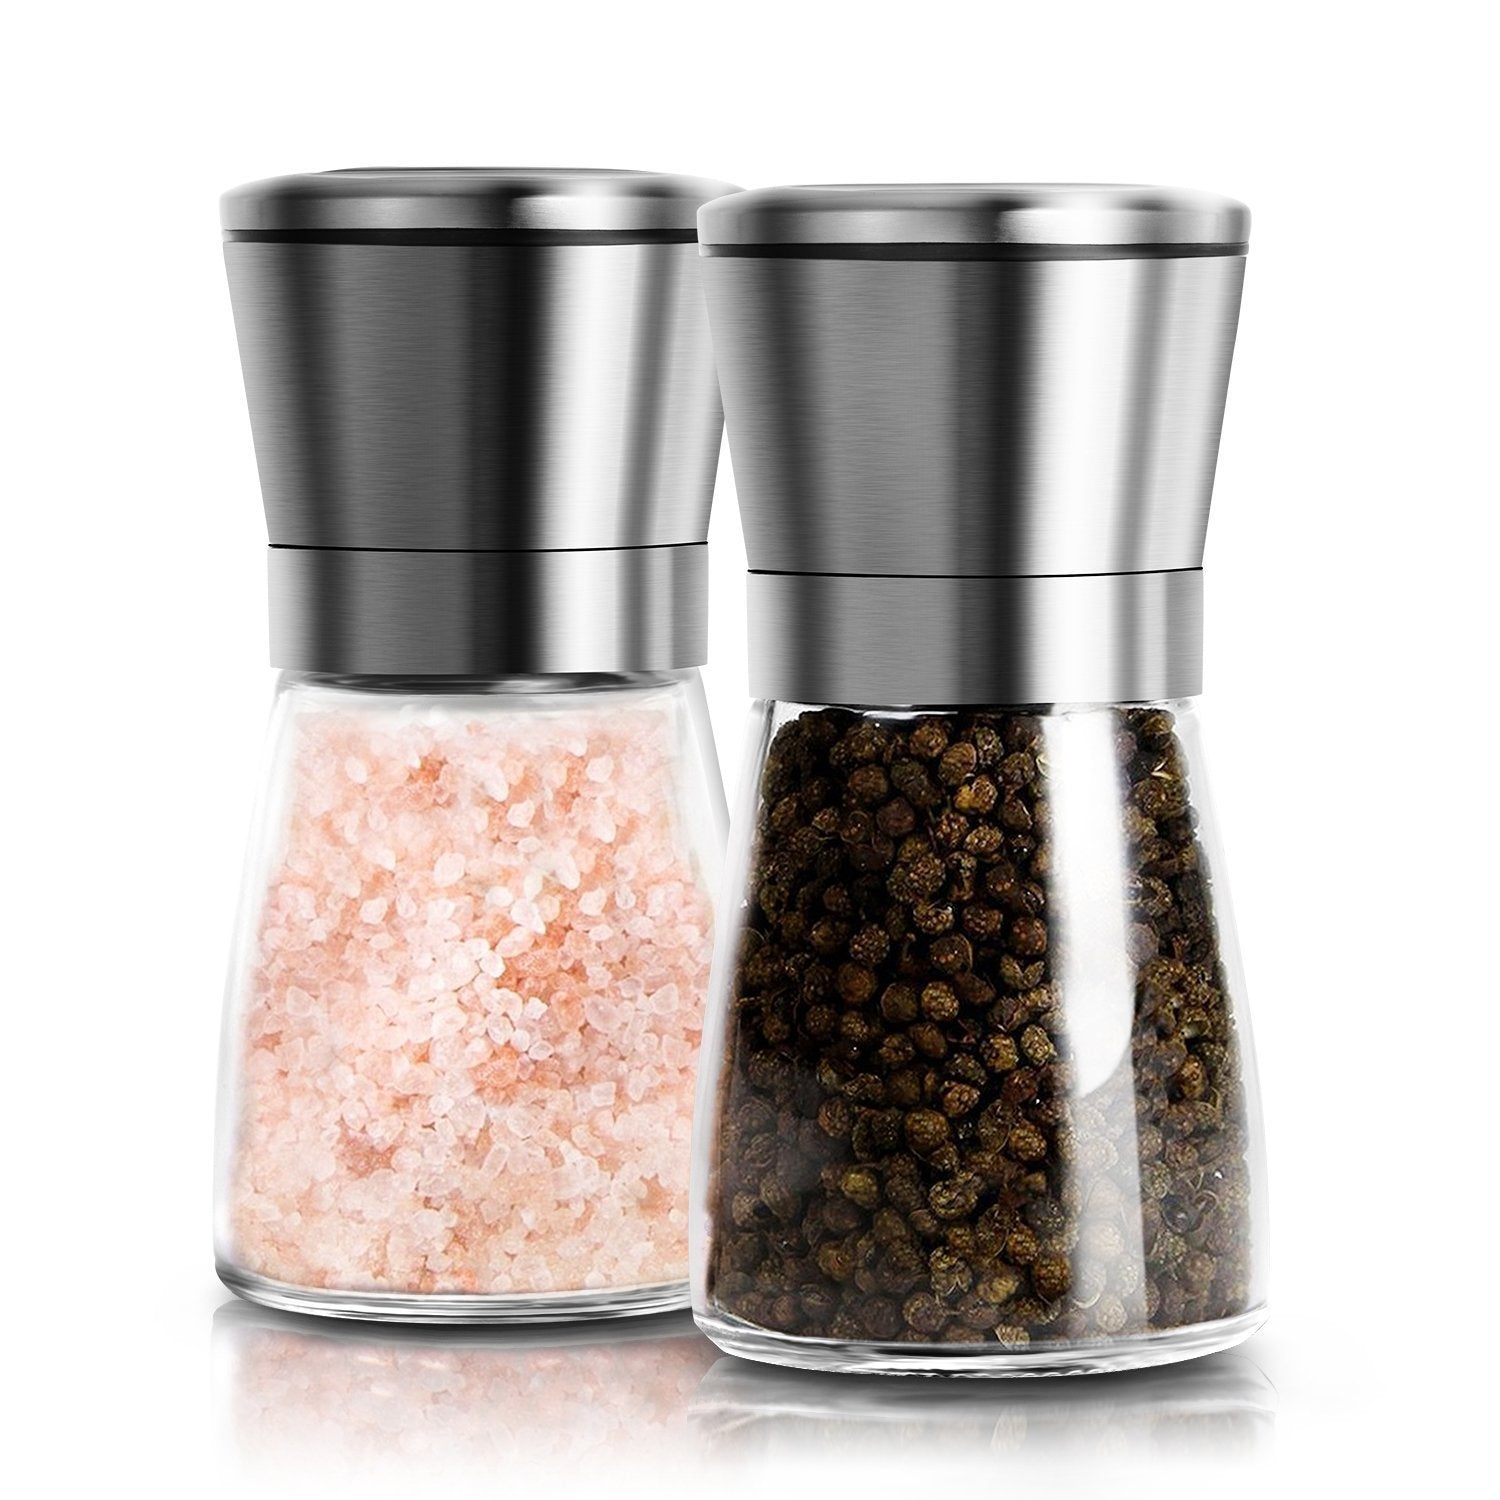 Salt and Pepper Grinder Set of 2 - 18/8 Stainless Steel Top with Glass Body - Adjustable Coarseness - Salt and Pepper Shakers